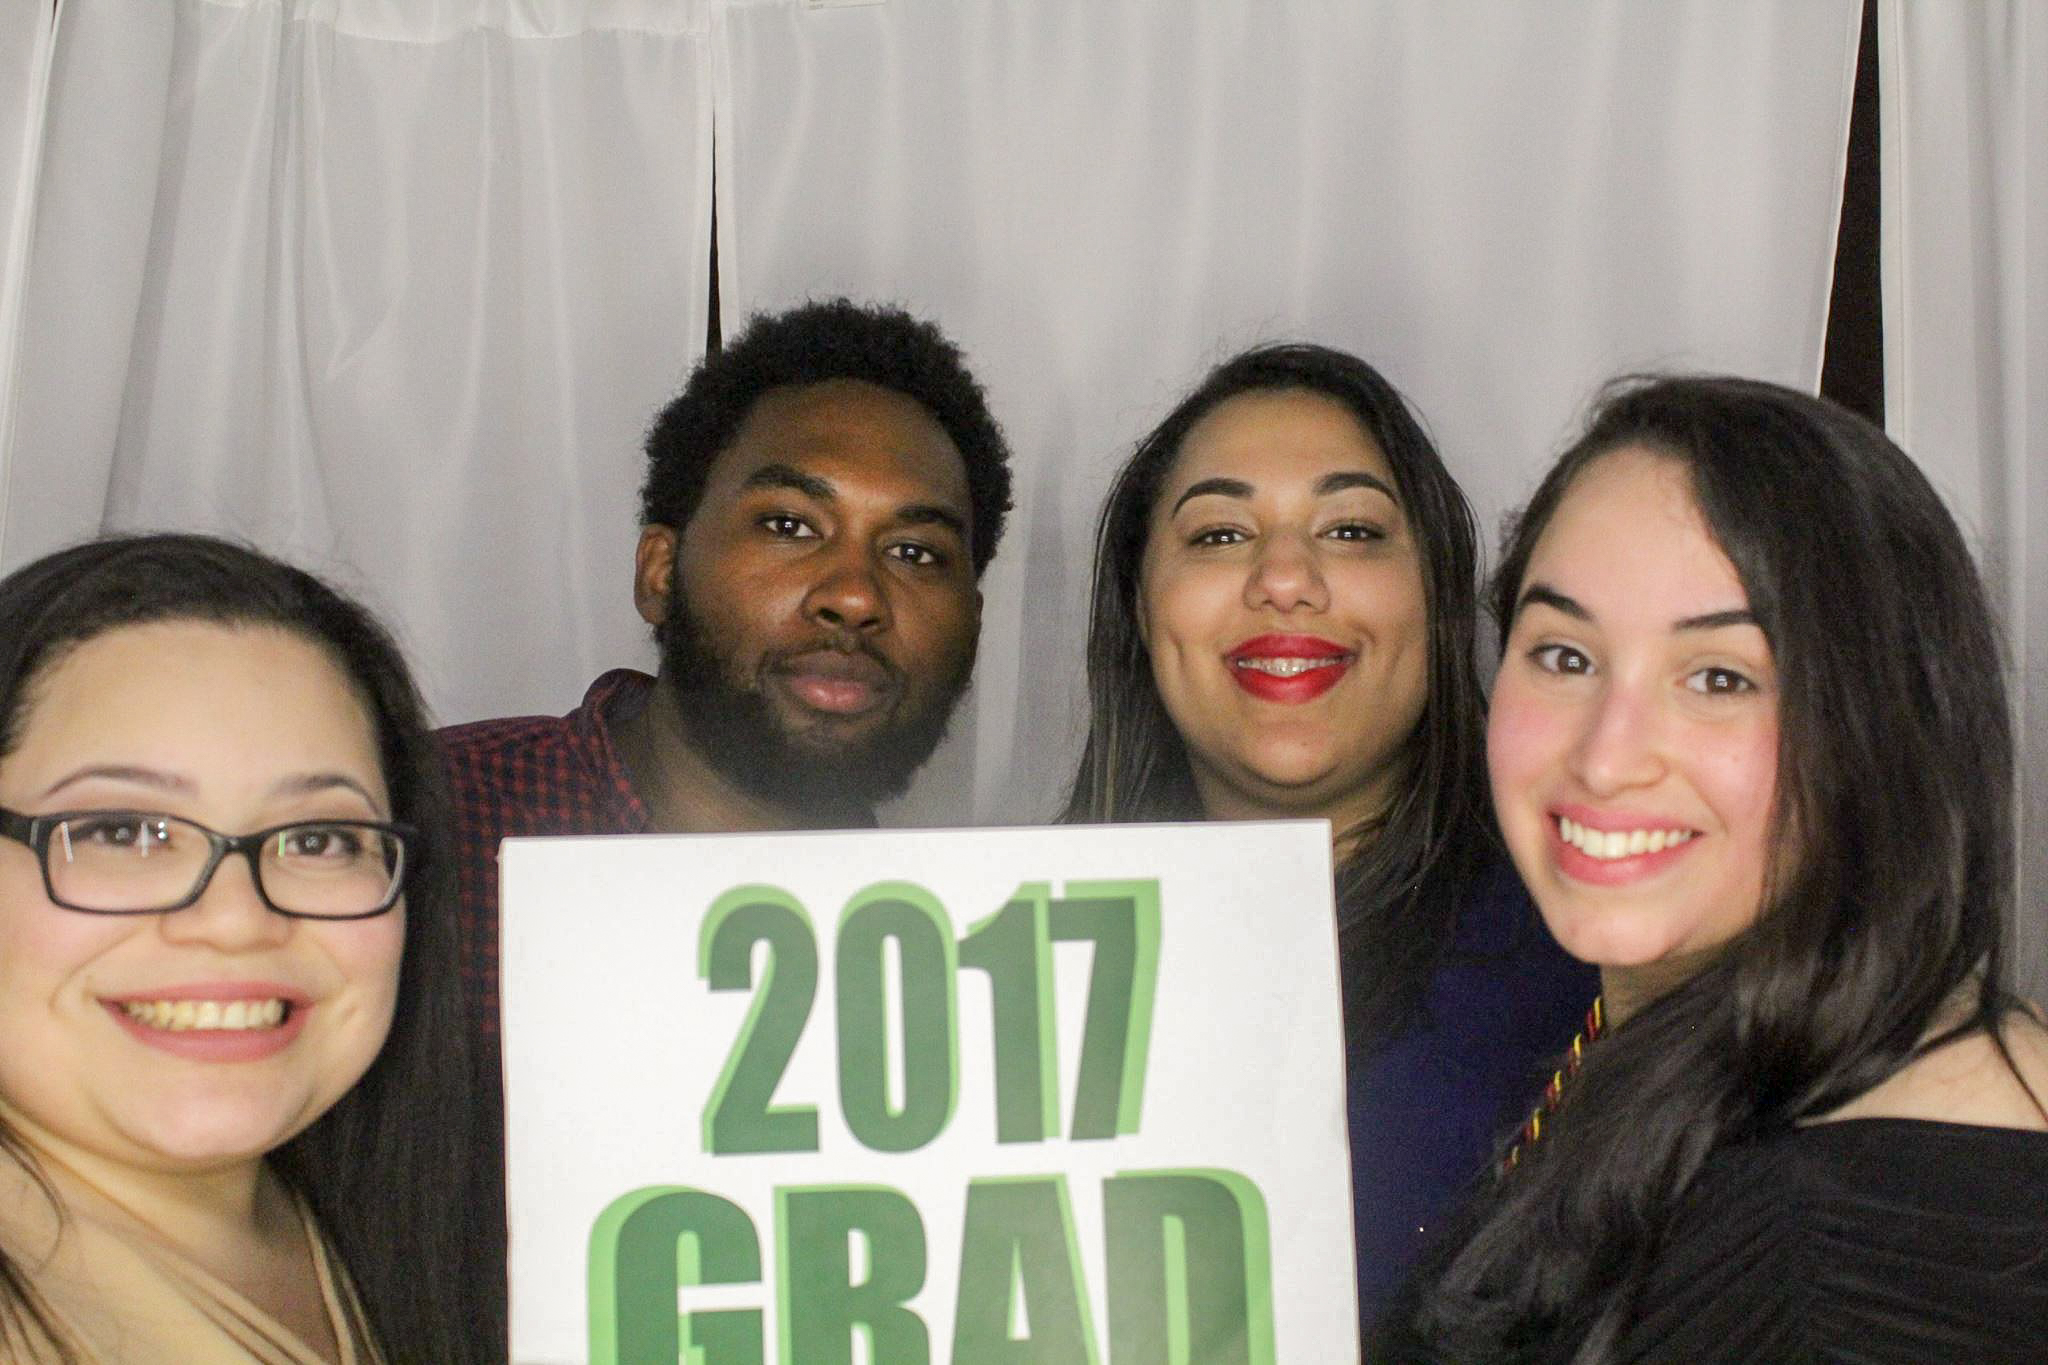 Cynthia Lopez, Mykael Tucker, Glorimi Dejesus and Yaritza Arana Ortega strike a pose in the Unity Gala photo booth.